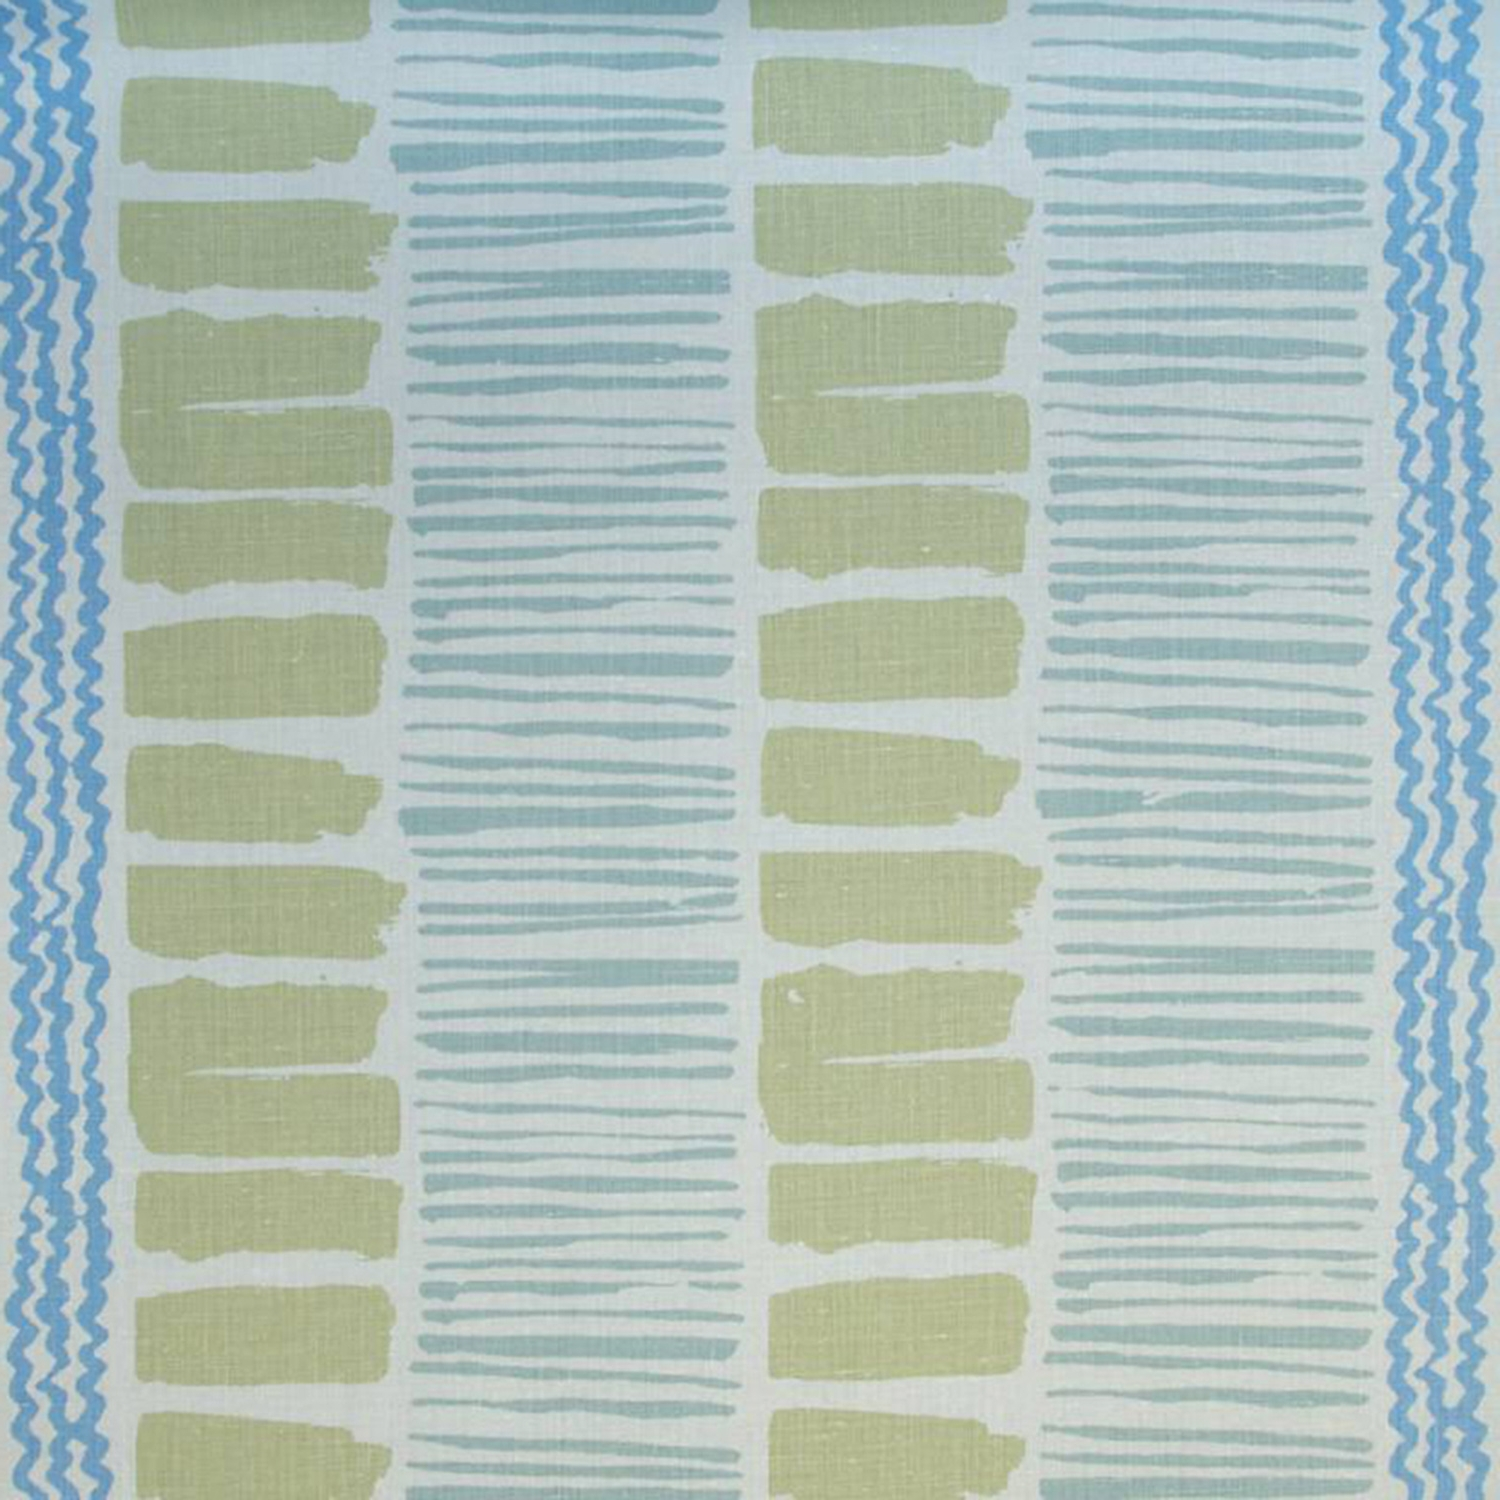 <p><strong>SALTAIRE</strong>cornflower/aqua/green/oyster 4450-02<a href=/collection-5/saltaire-cornflower-aqua-green-oyster-4450-02>More →</a></p>